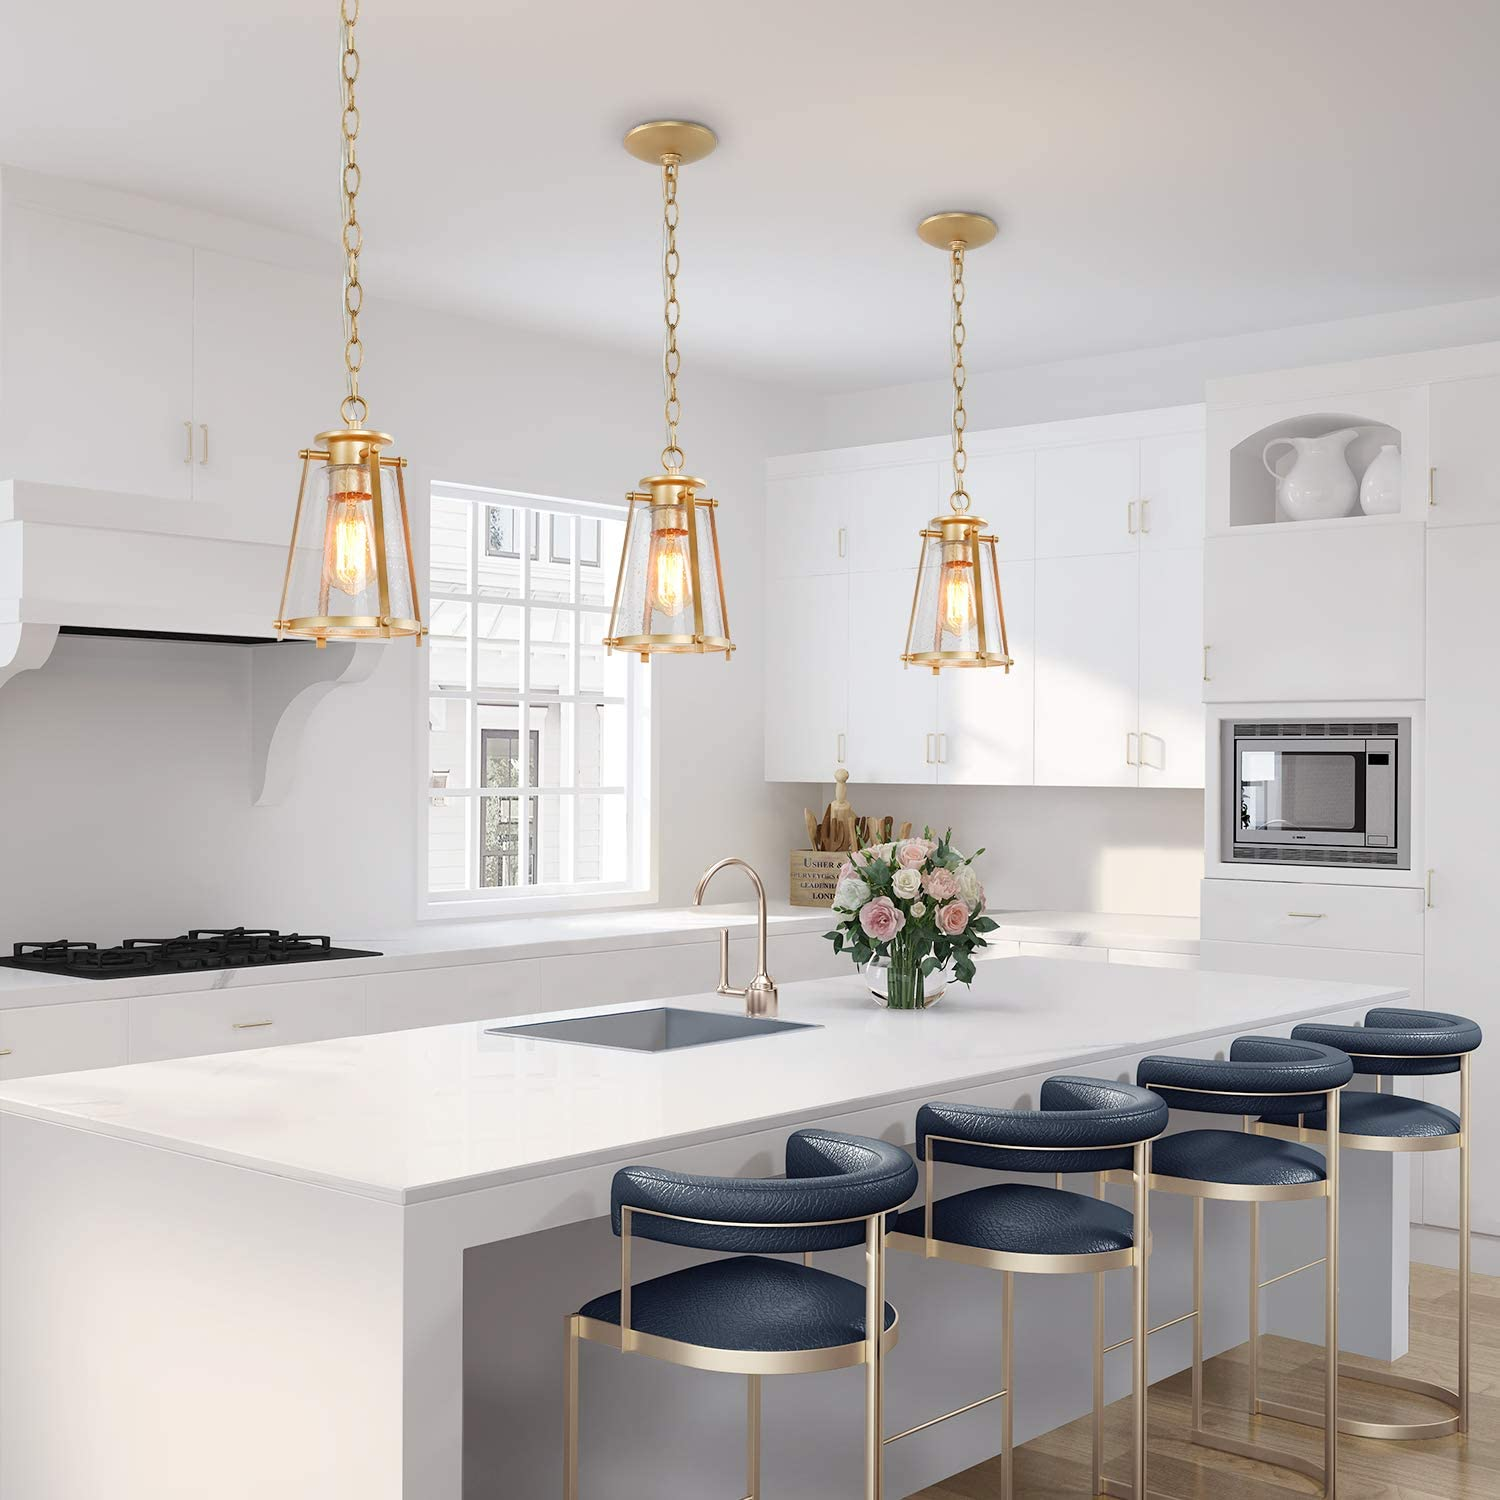 Buy Ksana Gold Pendant Lighting For Kitchen Island Hanging Brass Light Fixtures With Seeded Glass For Dining Room Foyer Online In Indonesia B07ythtm5s